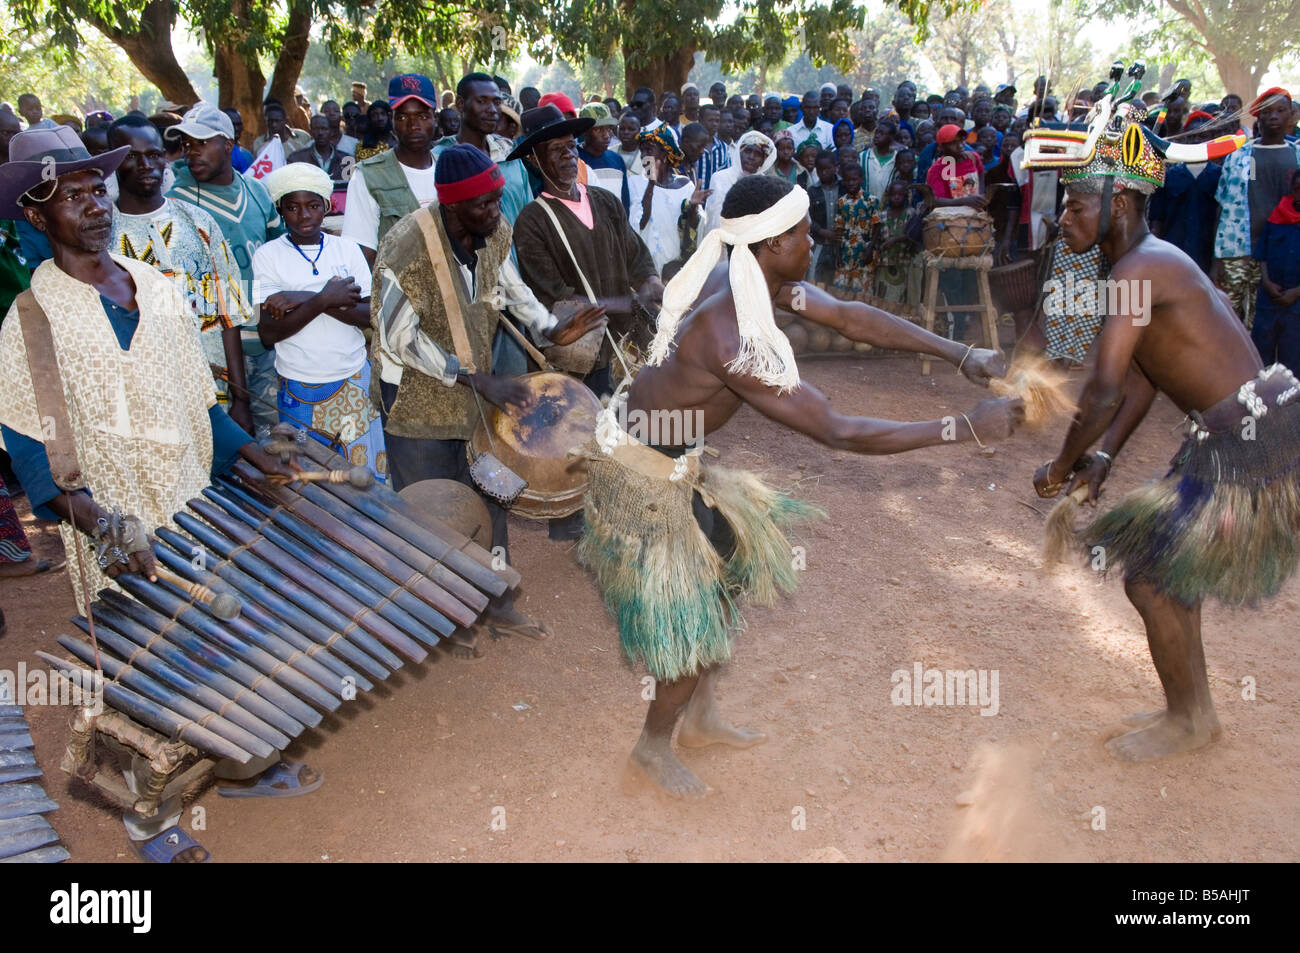 Senoufo masked dancer and musicians at festivities, Loulouni Village, Sikasso area, Mali, Africa - Stock Image